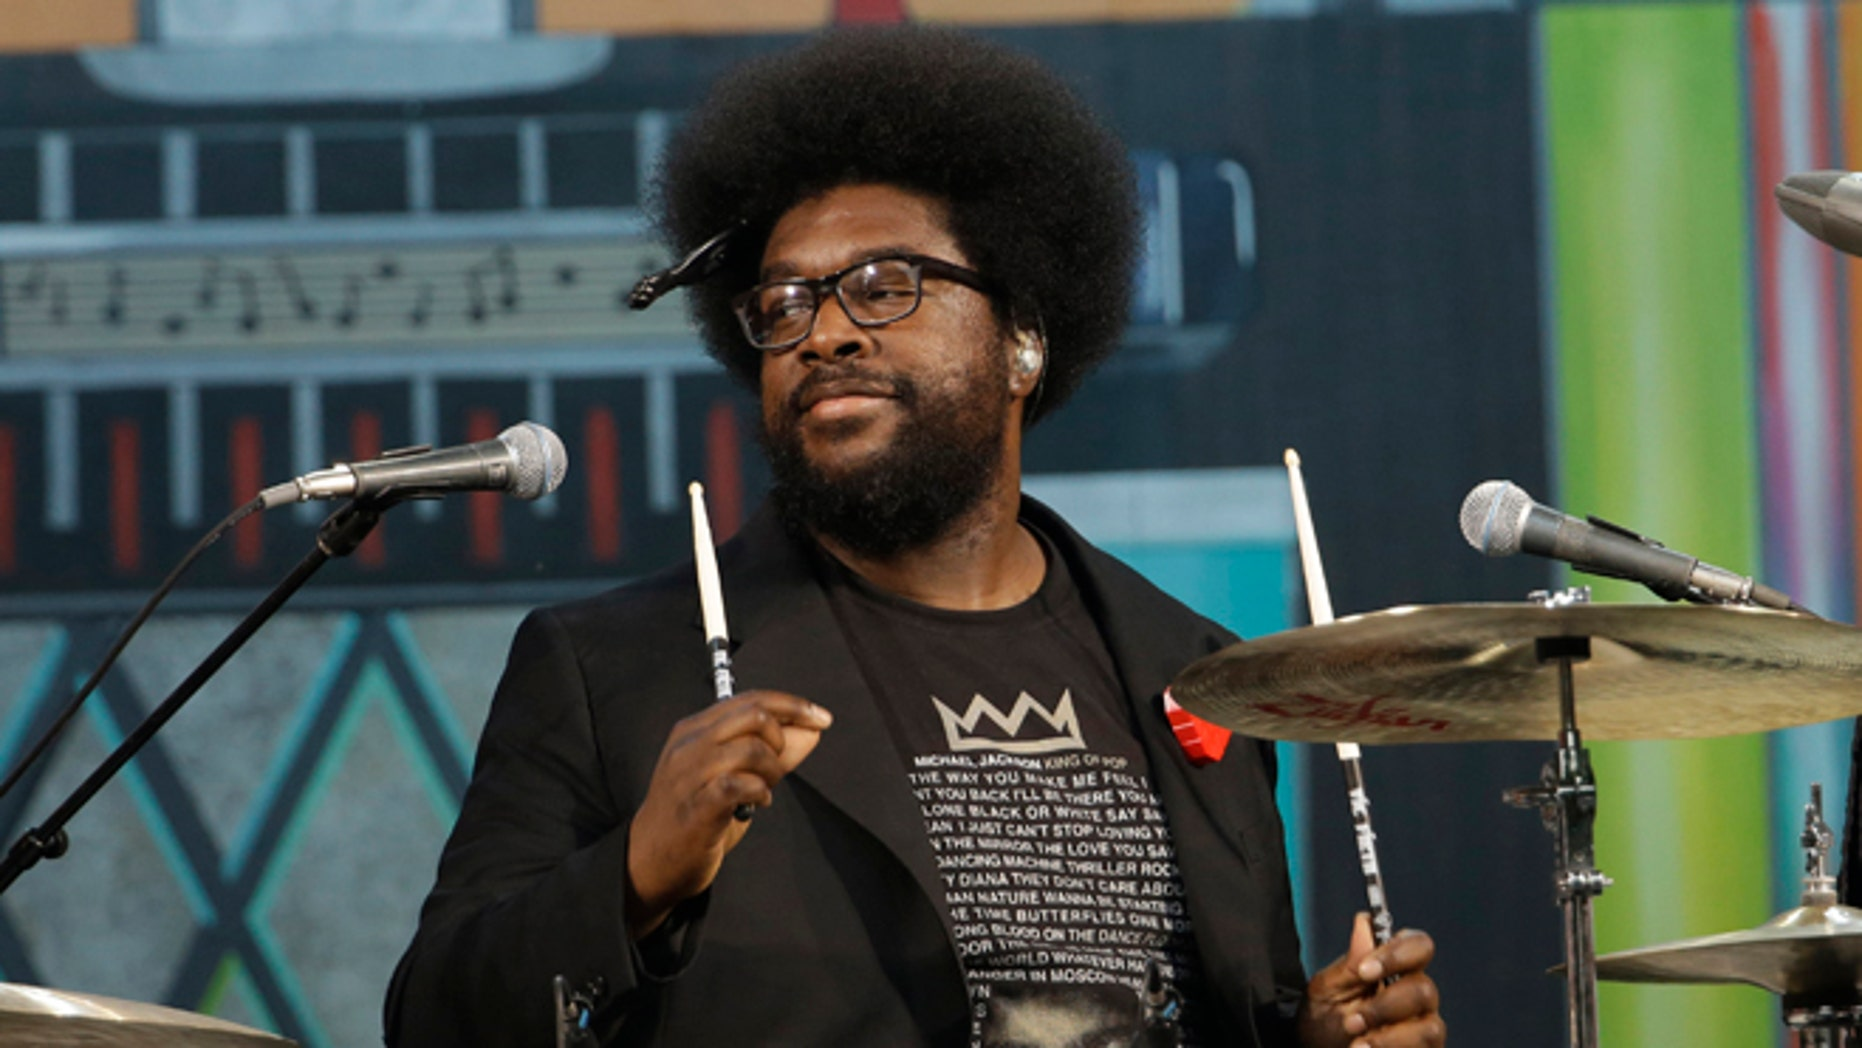 Questlove will be performing at a Pennsylvania prom despite canceling days earlier.